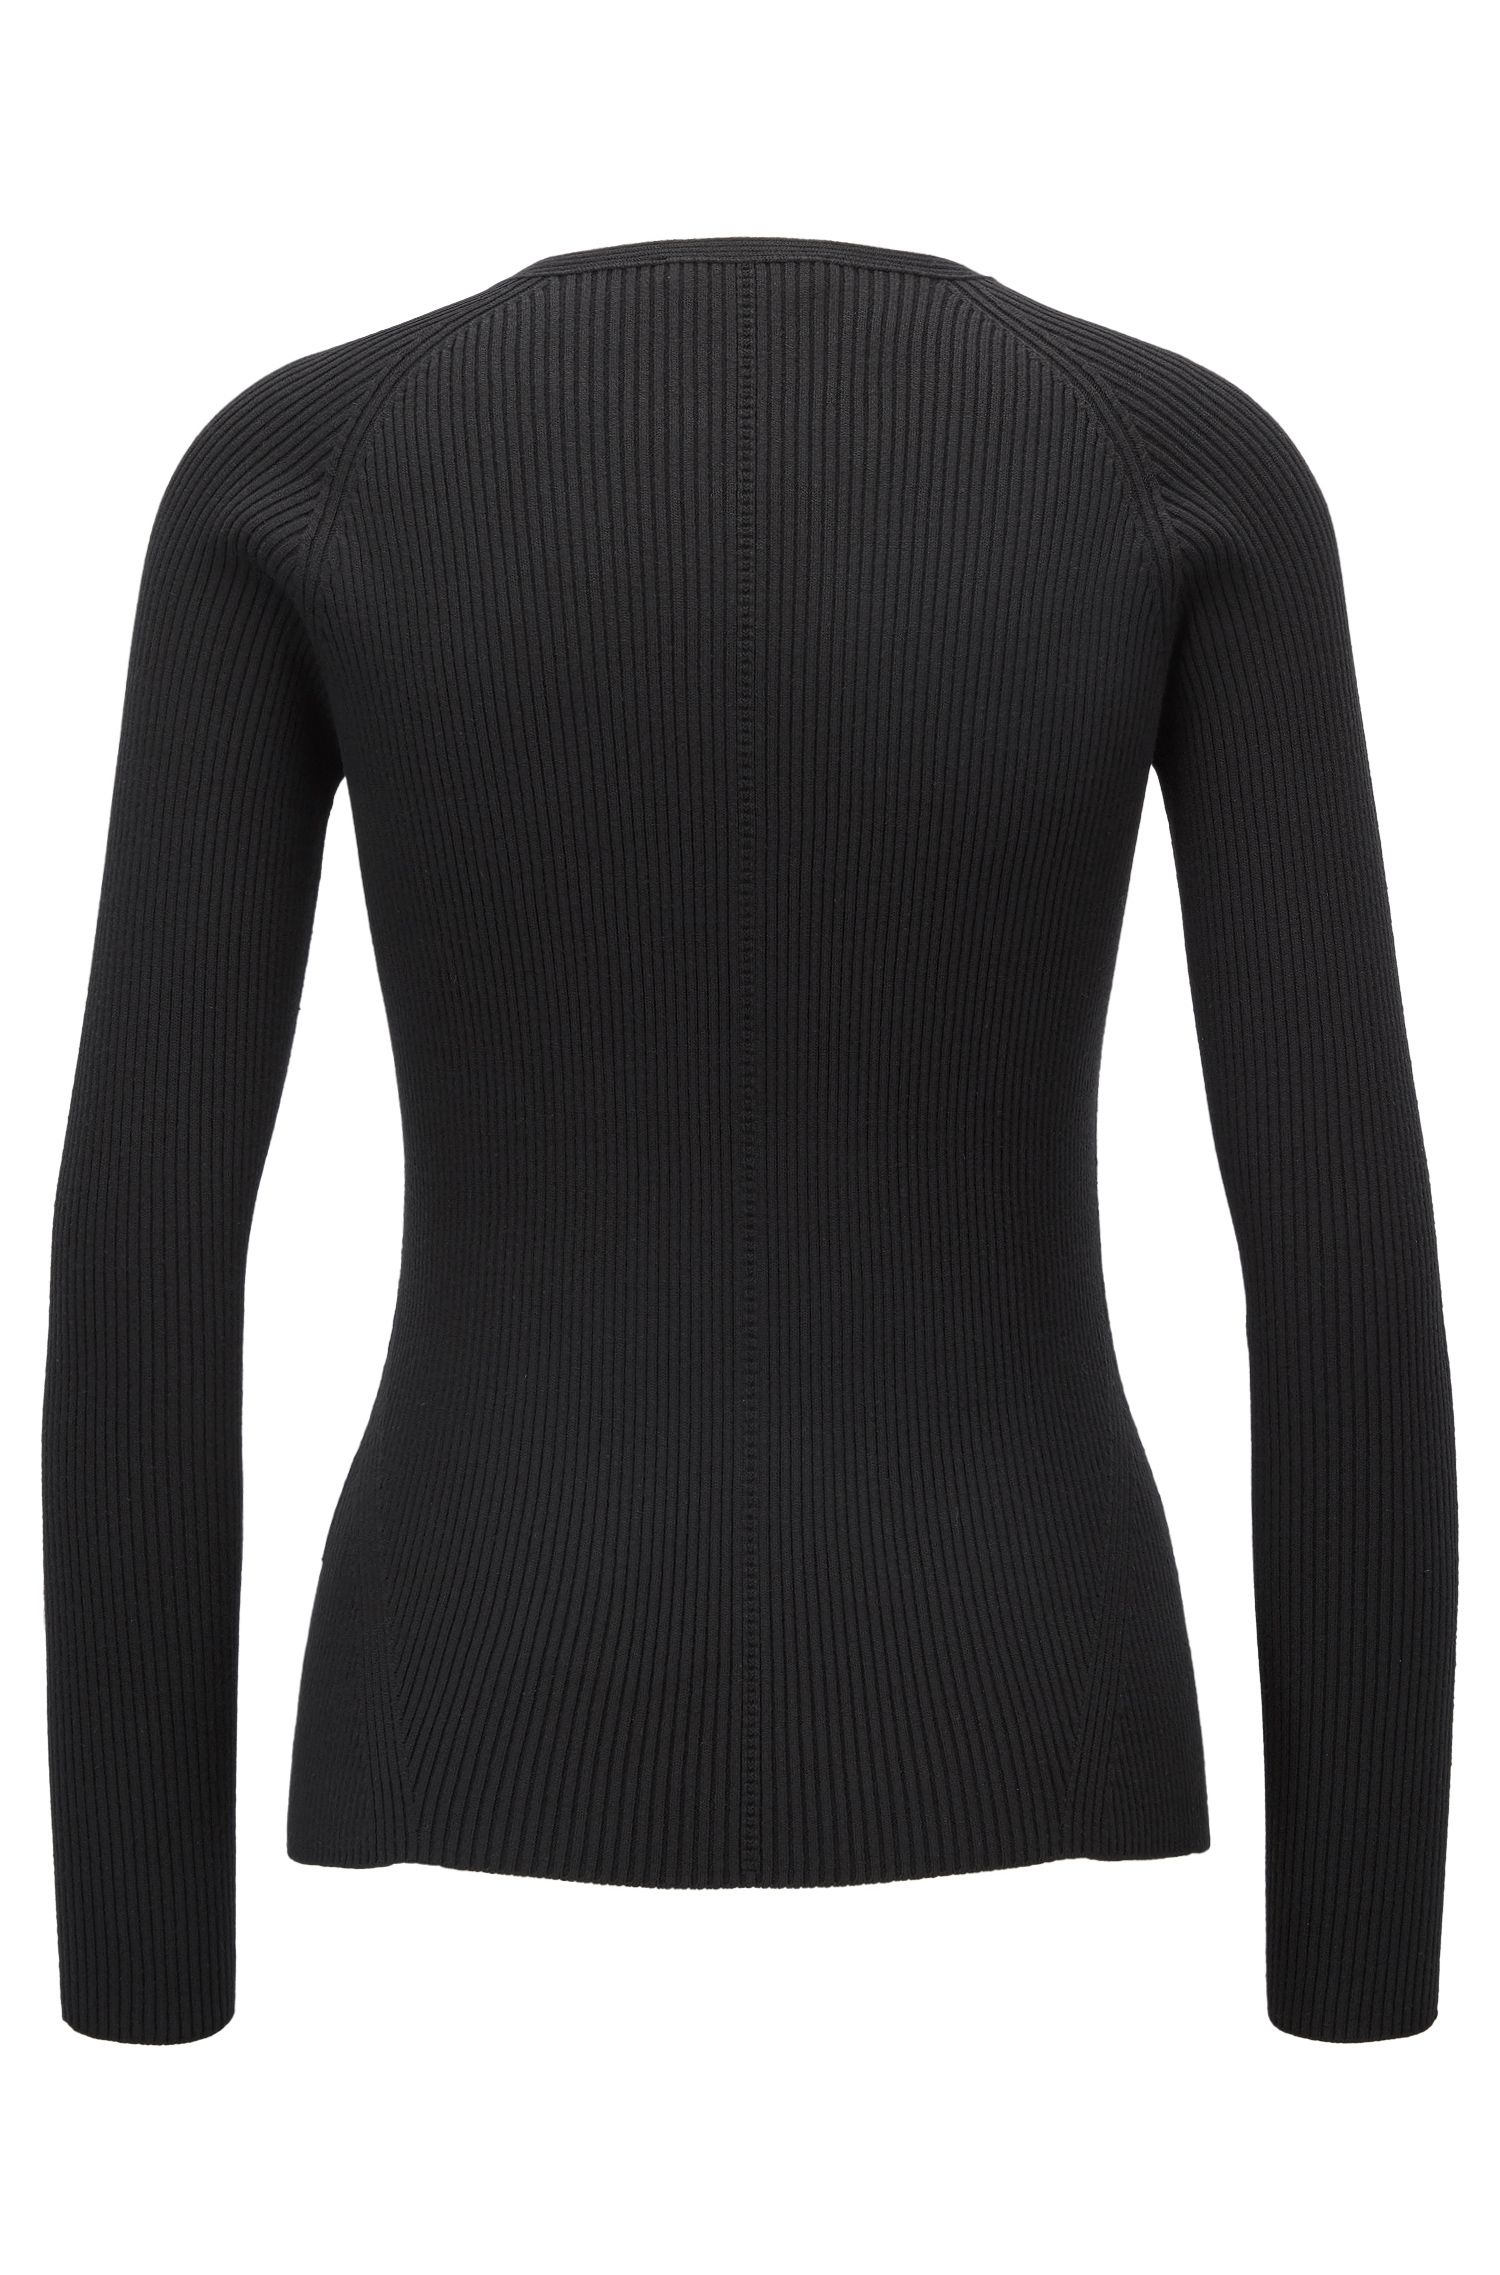 Crew-neck sweater in a textured rib knit